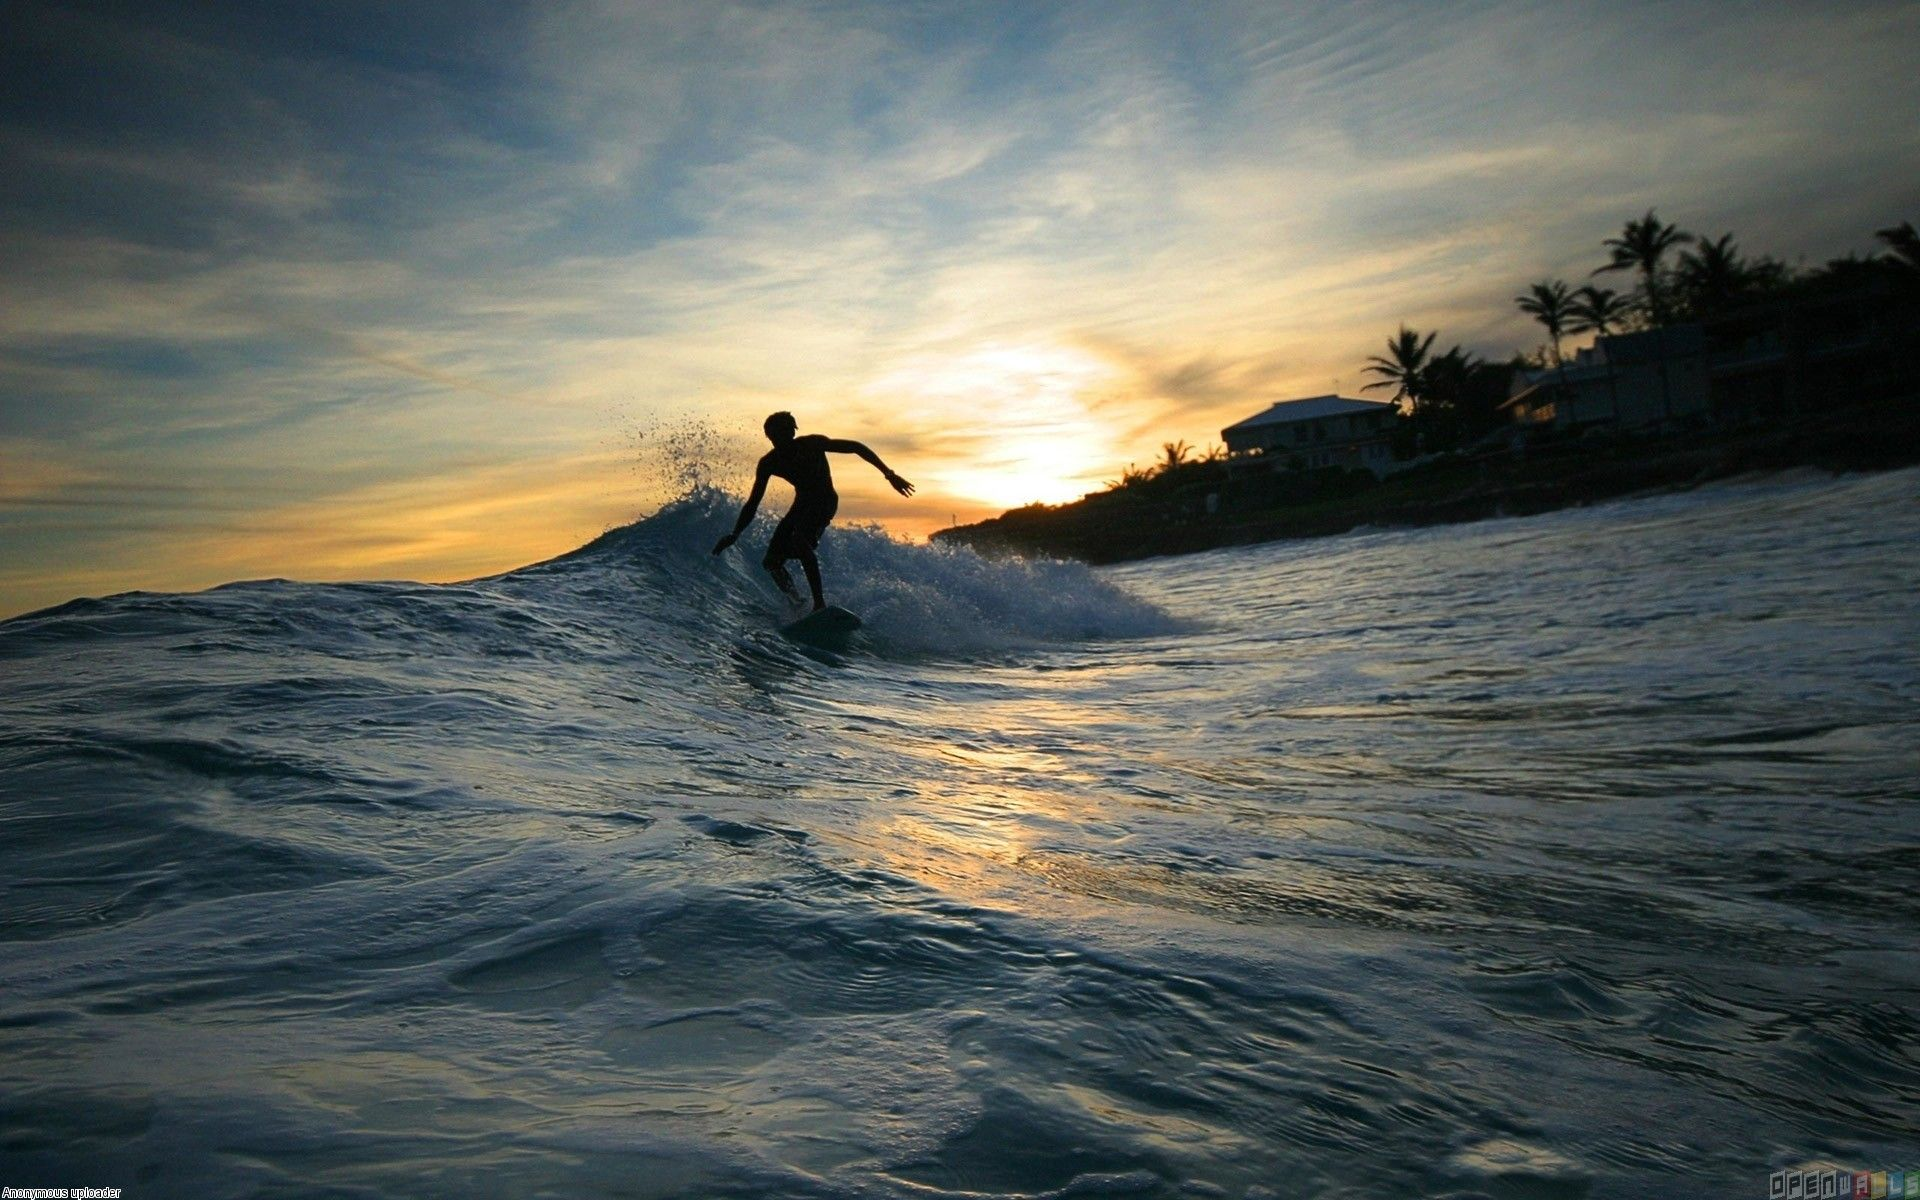 Newcomers: 10 Best Places To Learn To Surf | HiConsumption